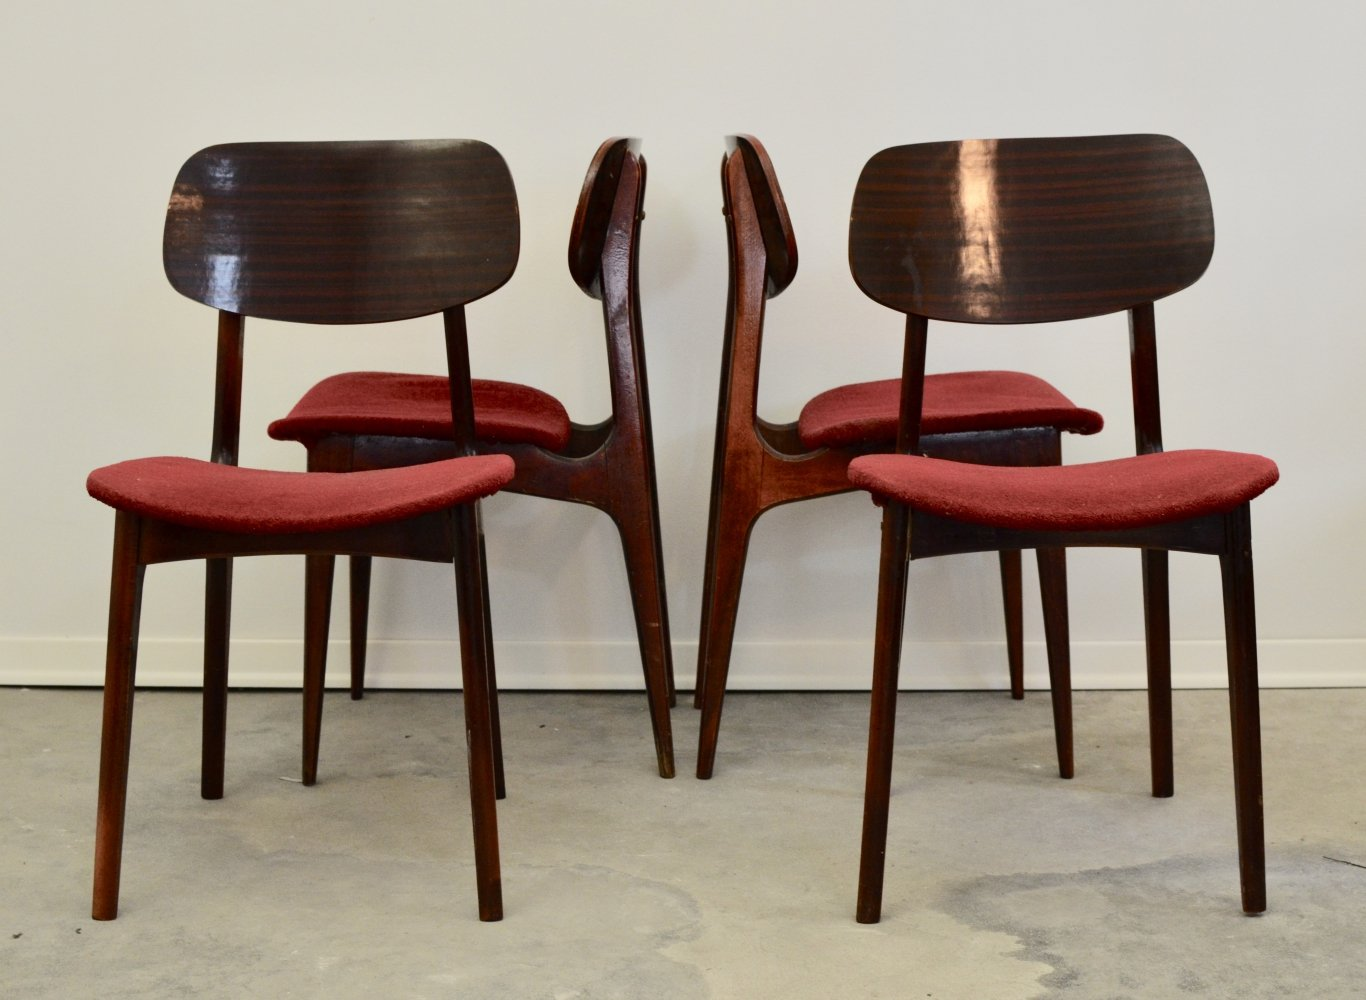 Set of 6 dining chairs, 1960s